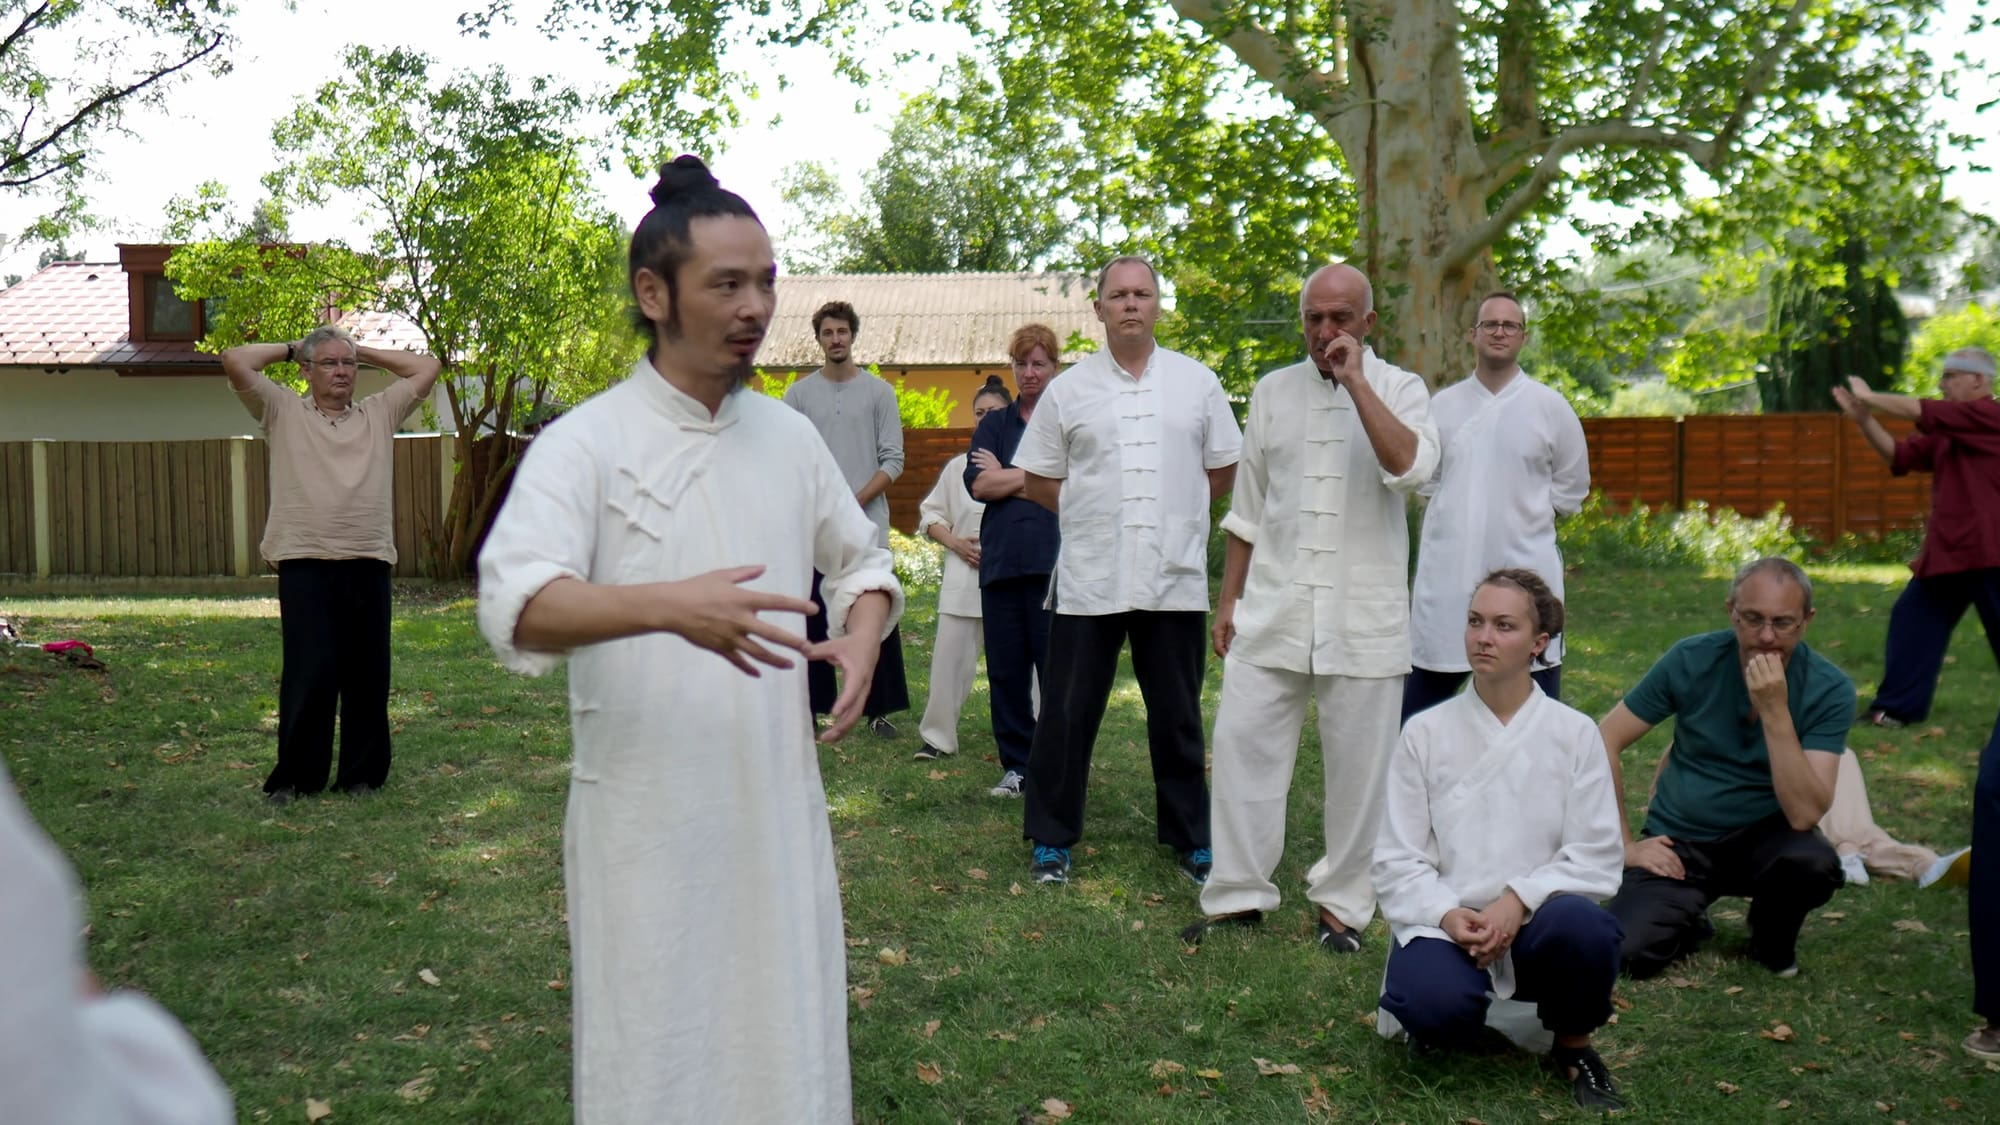 About the Wu Xing Qi Gong Hand Posture